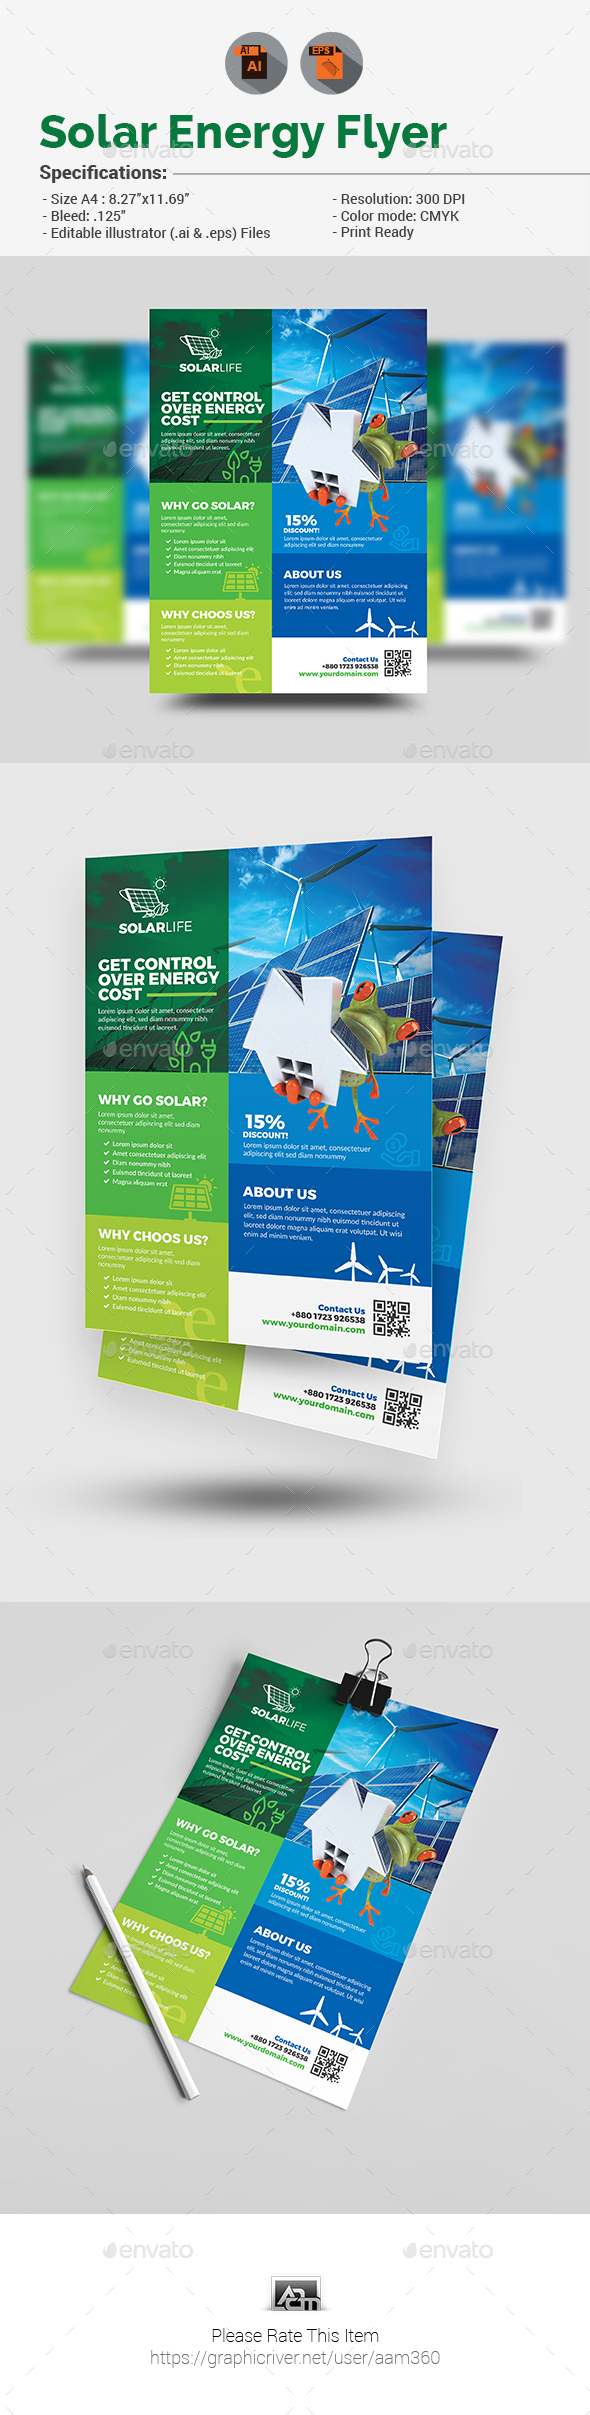 Solar Energy Flyer V2 - Flyers Print Templates